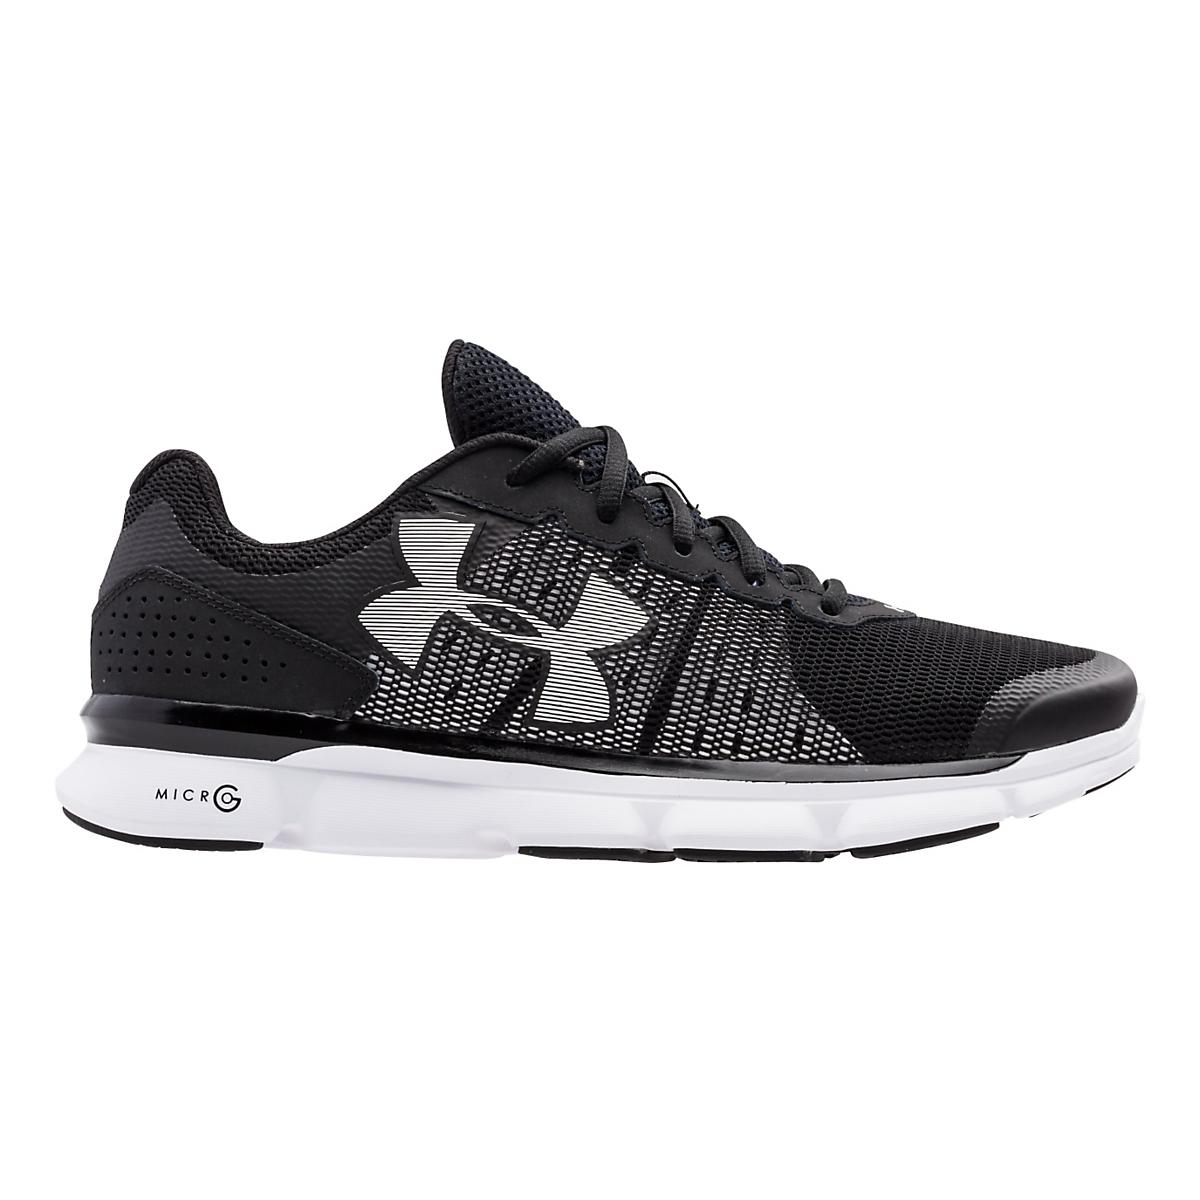 8b865c613e38 Mens Under Armour Micro G Speed Swift Running Shoe at Road Runner Sports